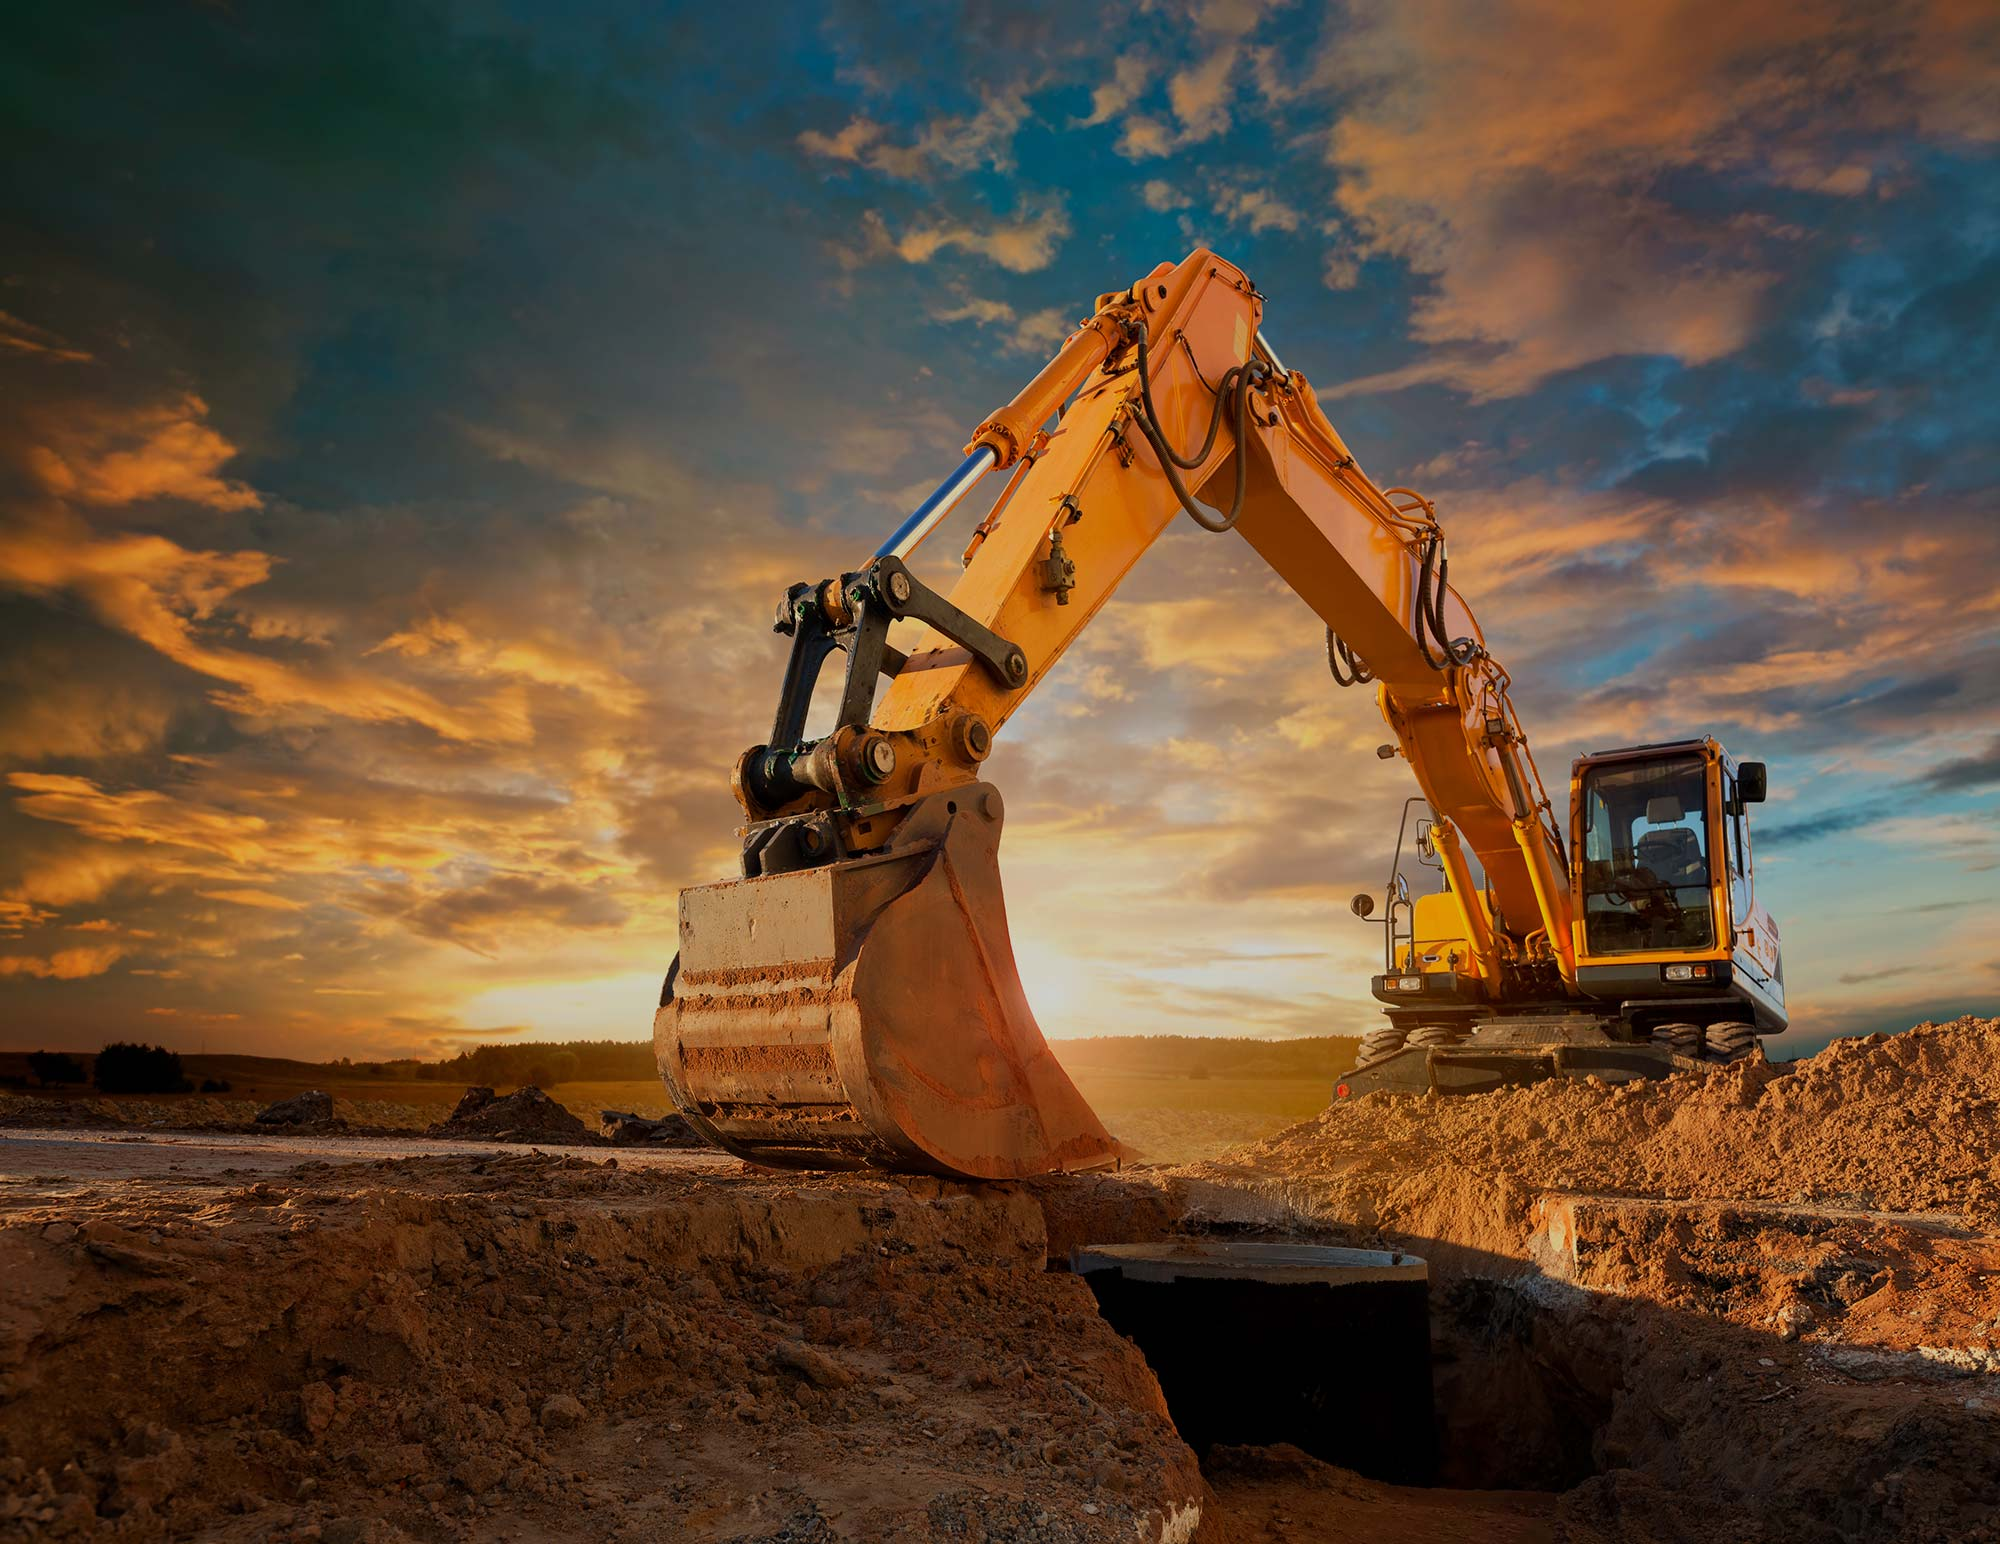 A yellow digger sitting on top of a pile of clay with the sun setting in the background